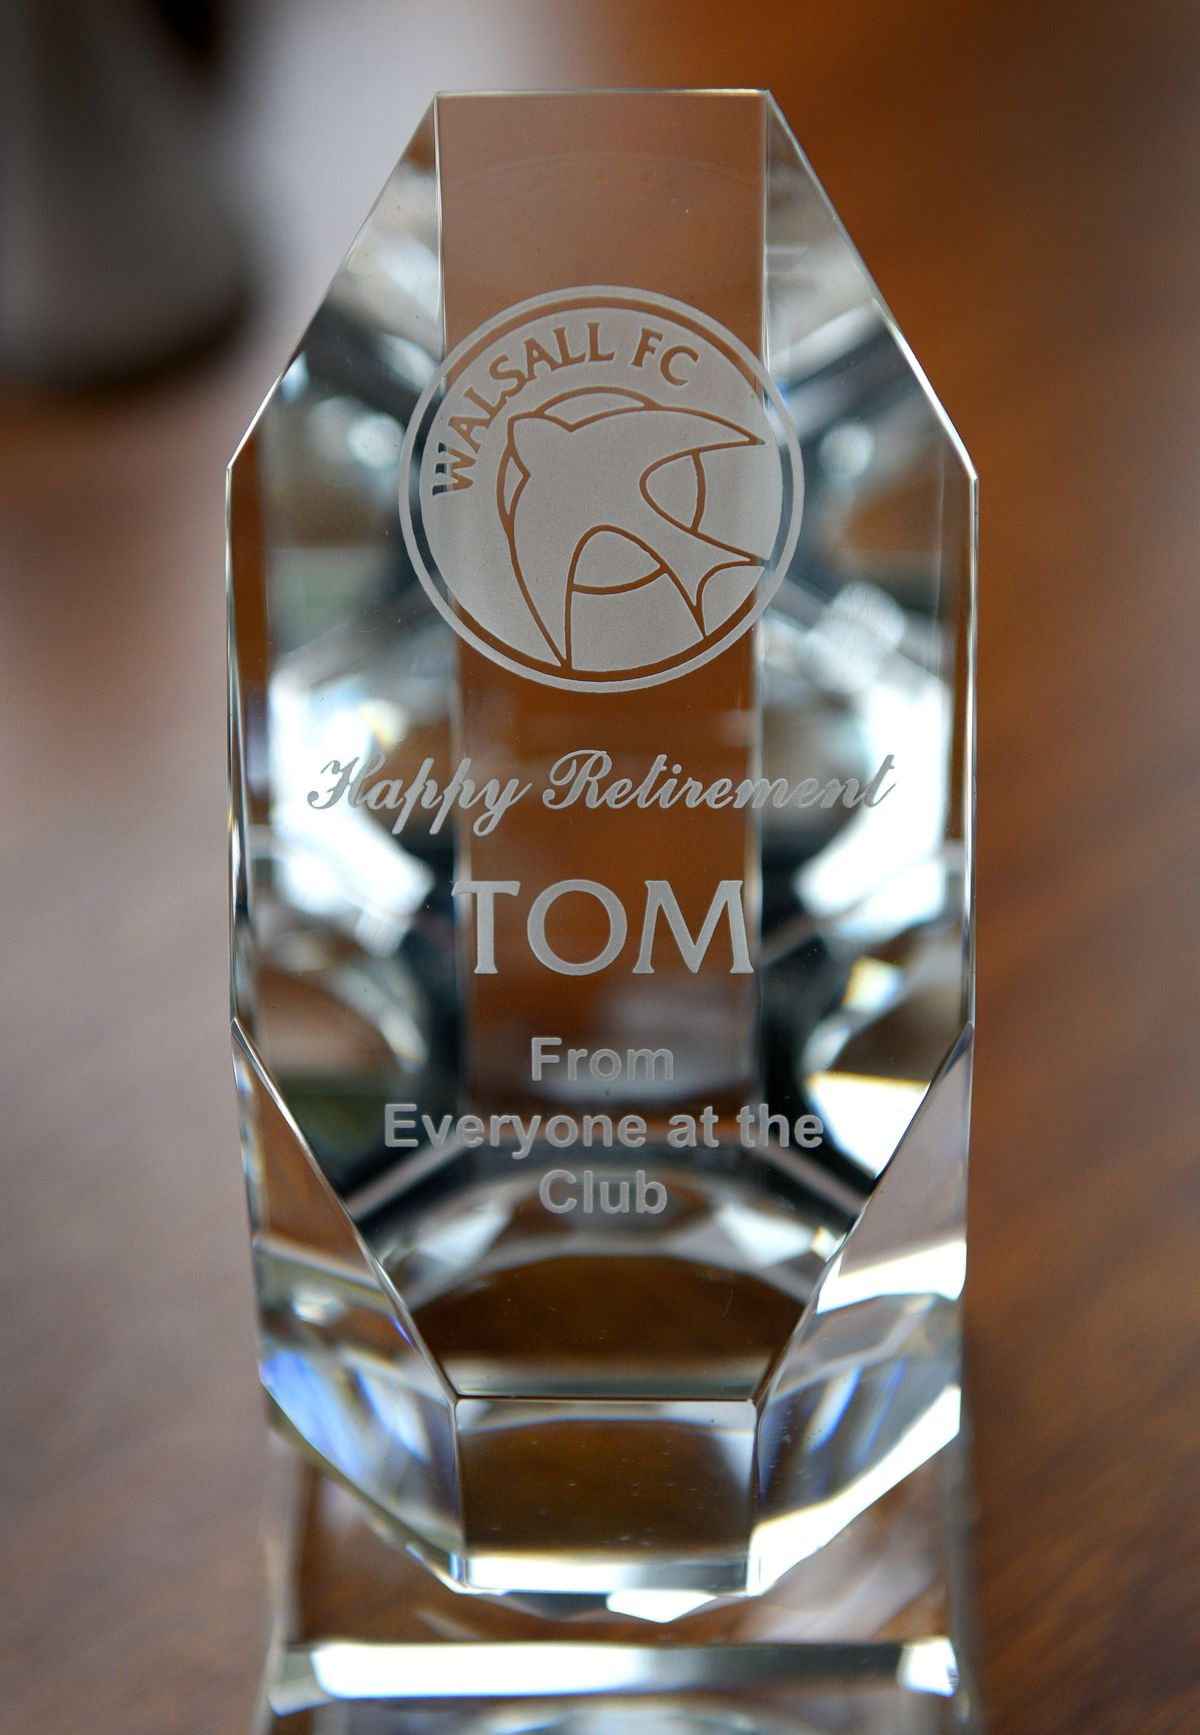 A trophy Tom received from the club.